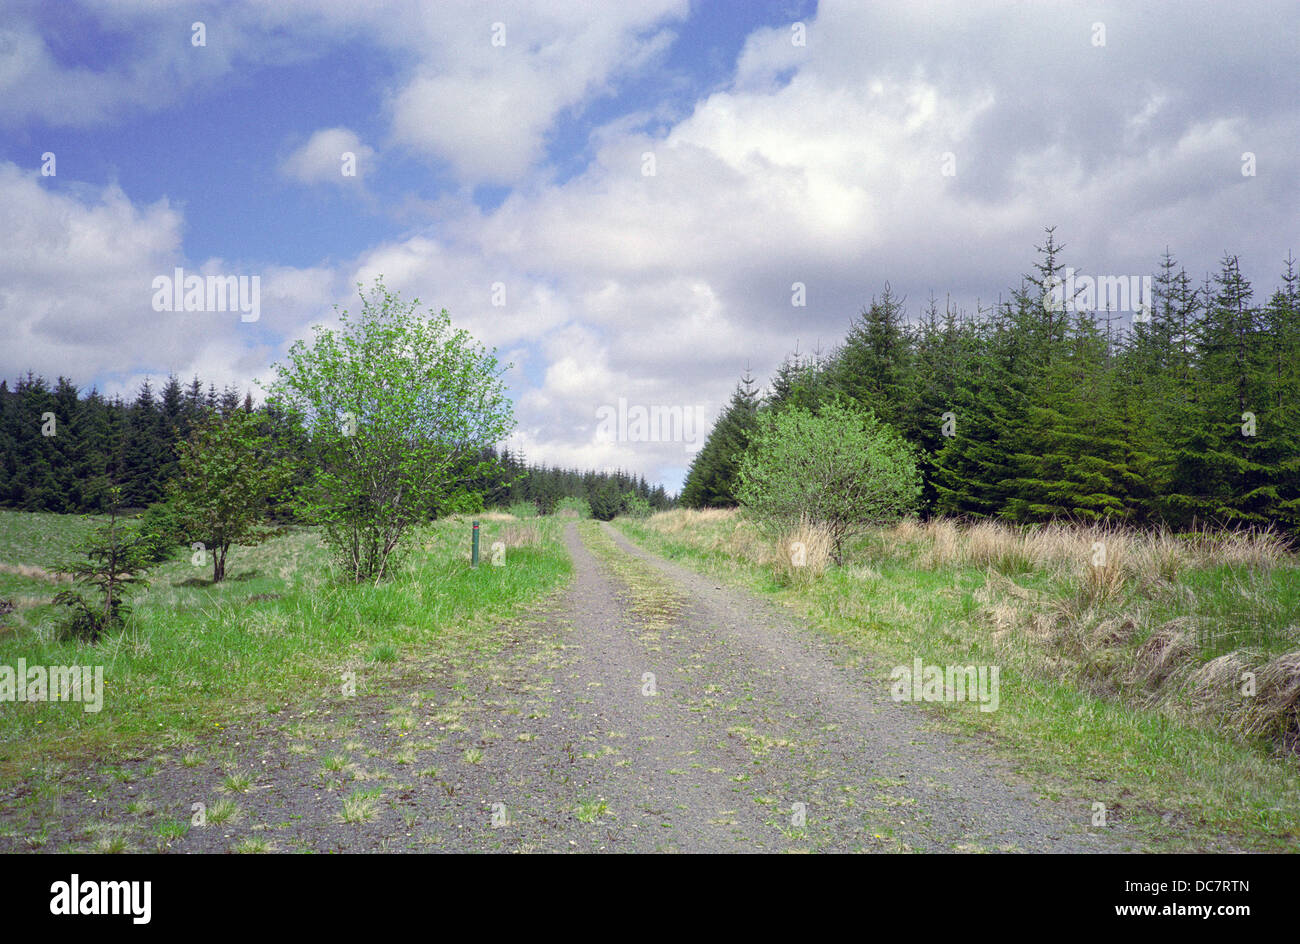 Craigieburn Forest with Unmade Road, Dumfries and Galloway, Scotland, UK - Stock Image